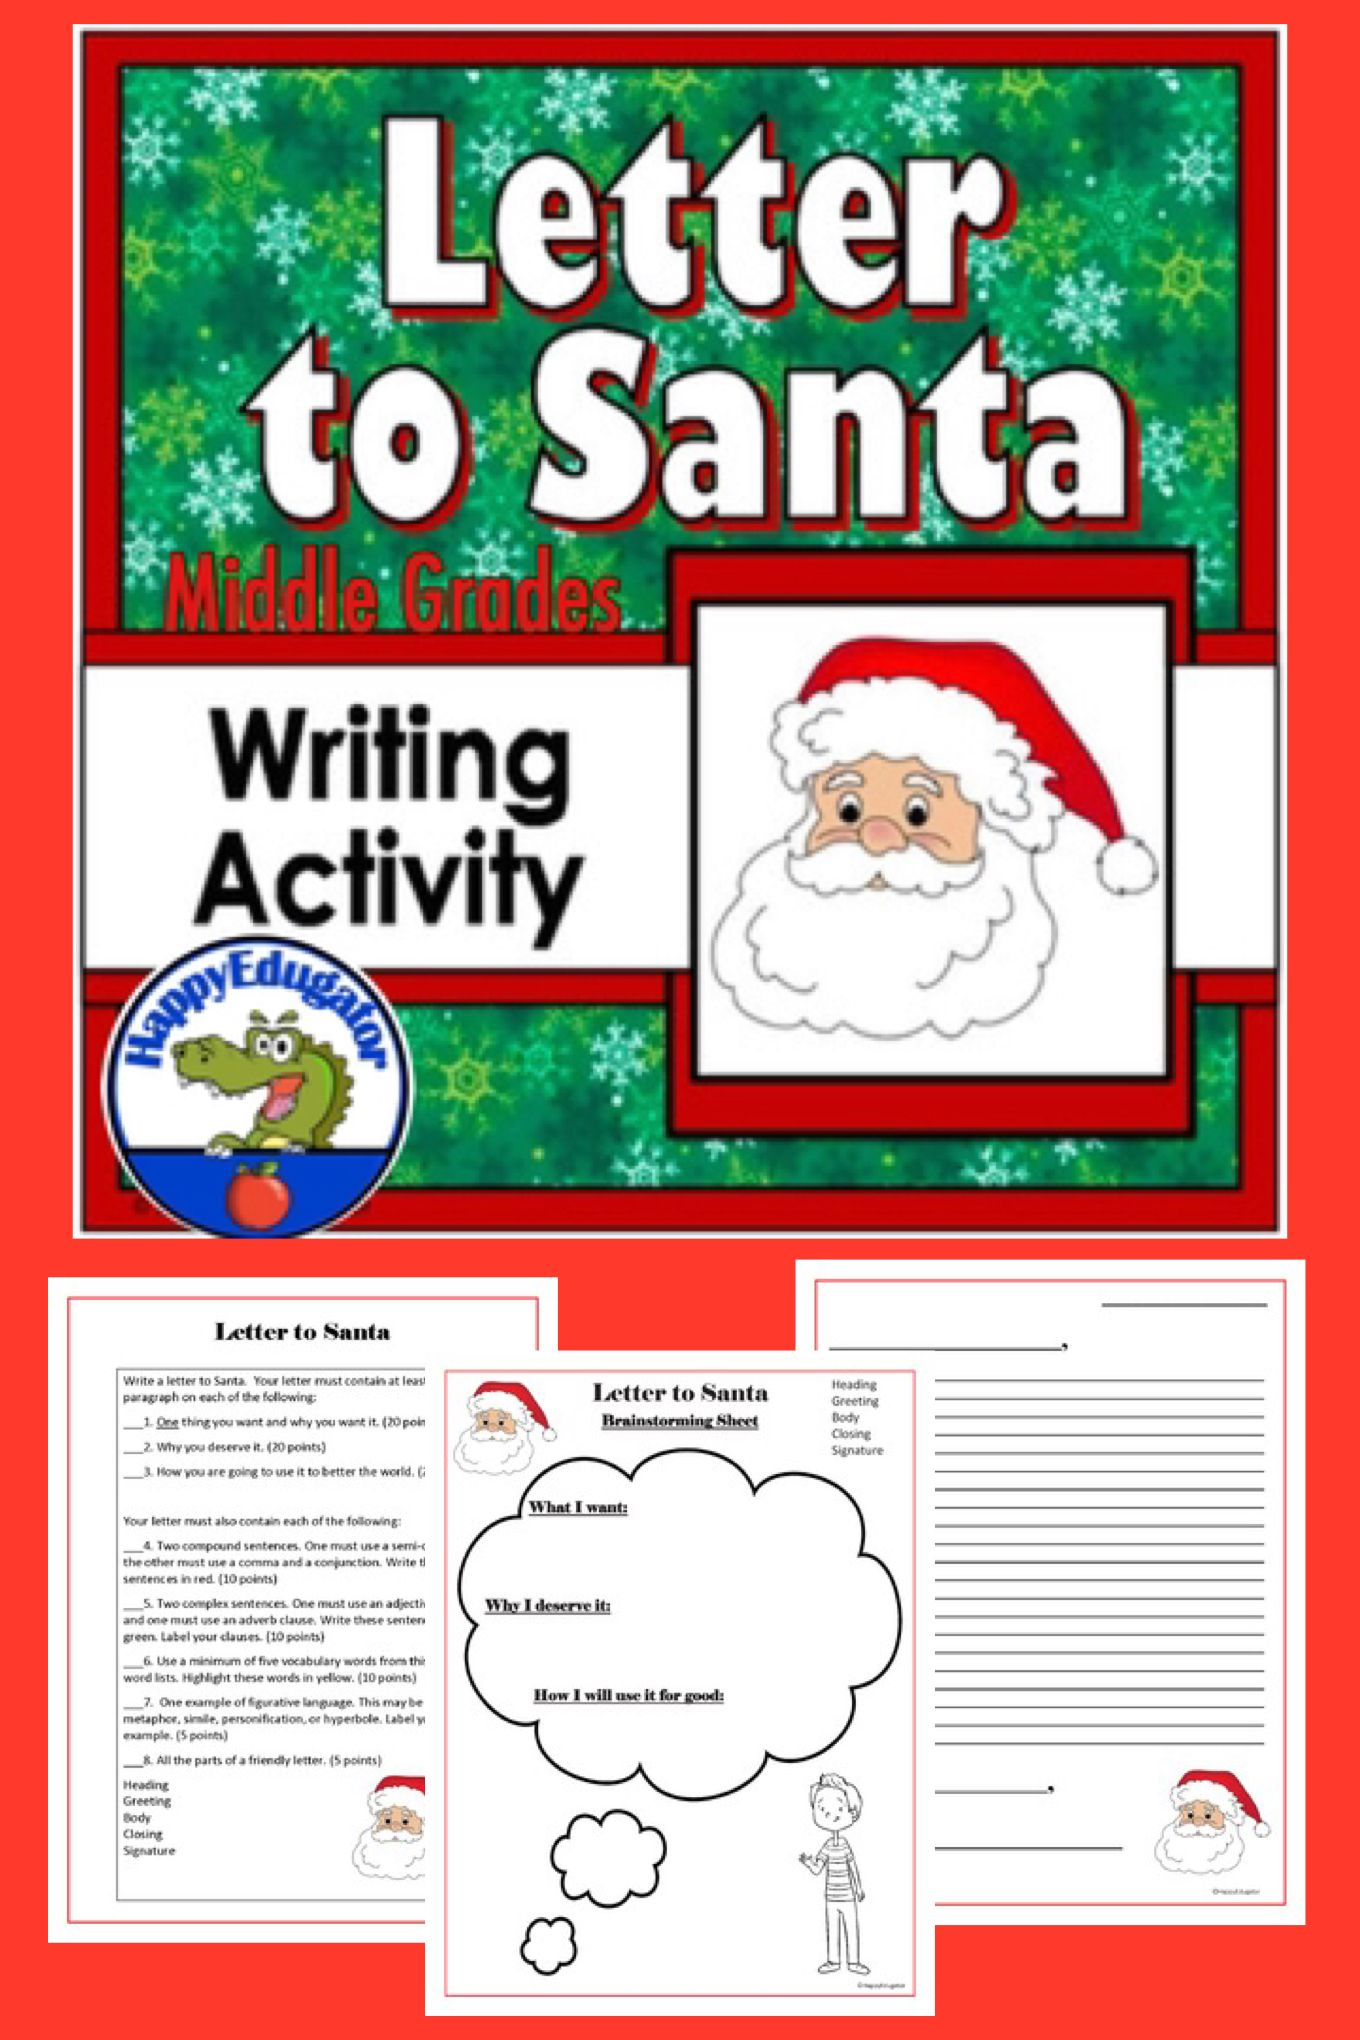 Christmas Letter To Santa Writing Activity For Middle